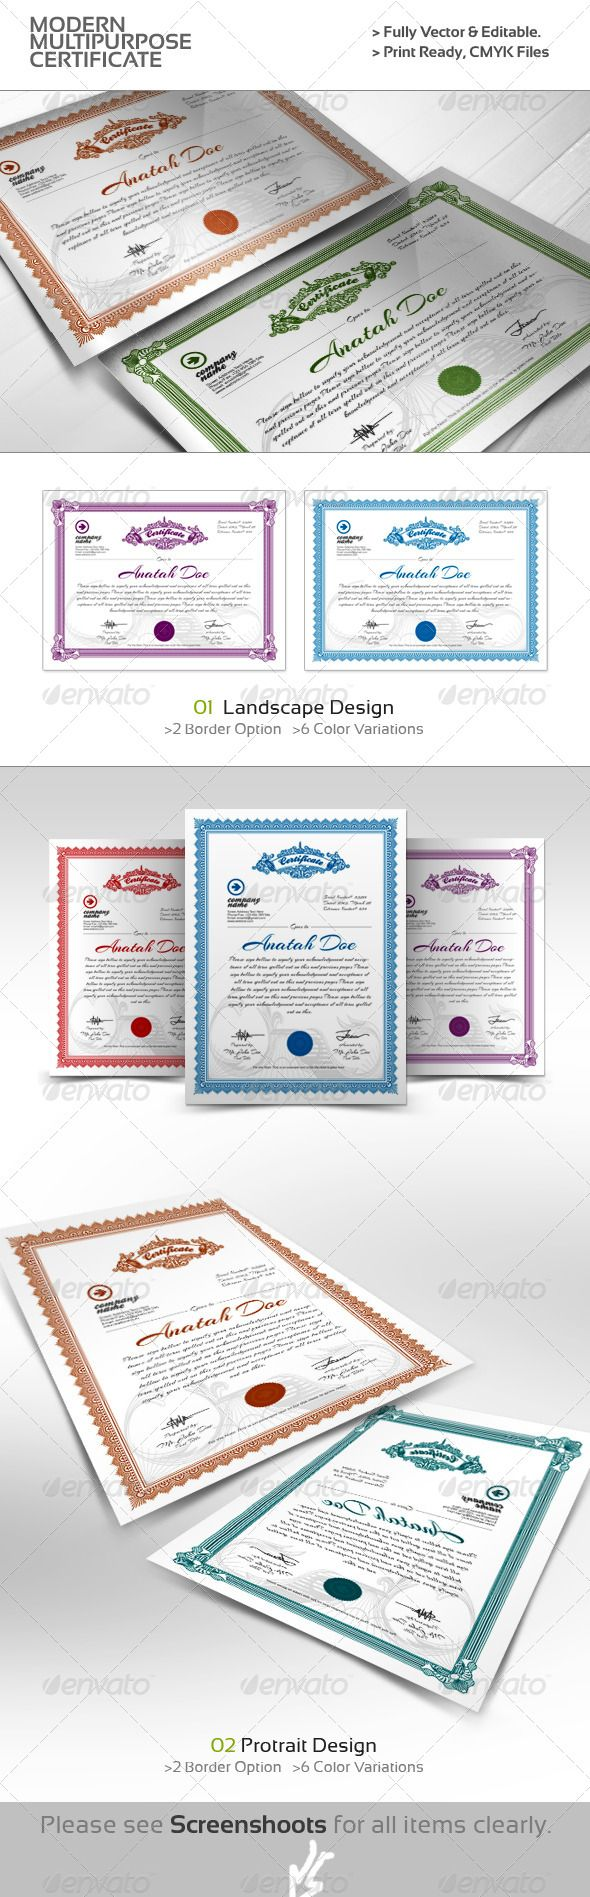 Modern Multipurpose Certificates - EPS Template • Only available here ➝ http://graphicriver.net/item/modern-multipurpose-certificates/4409262?ref=pxcr